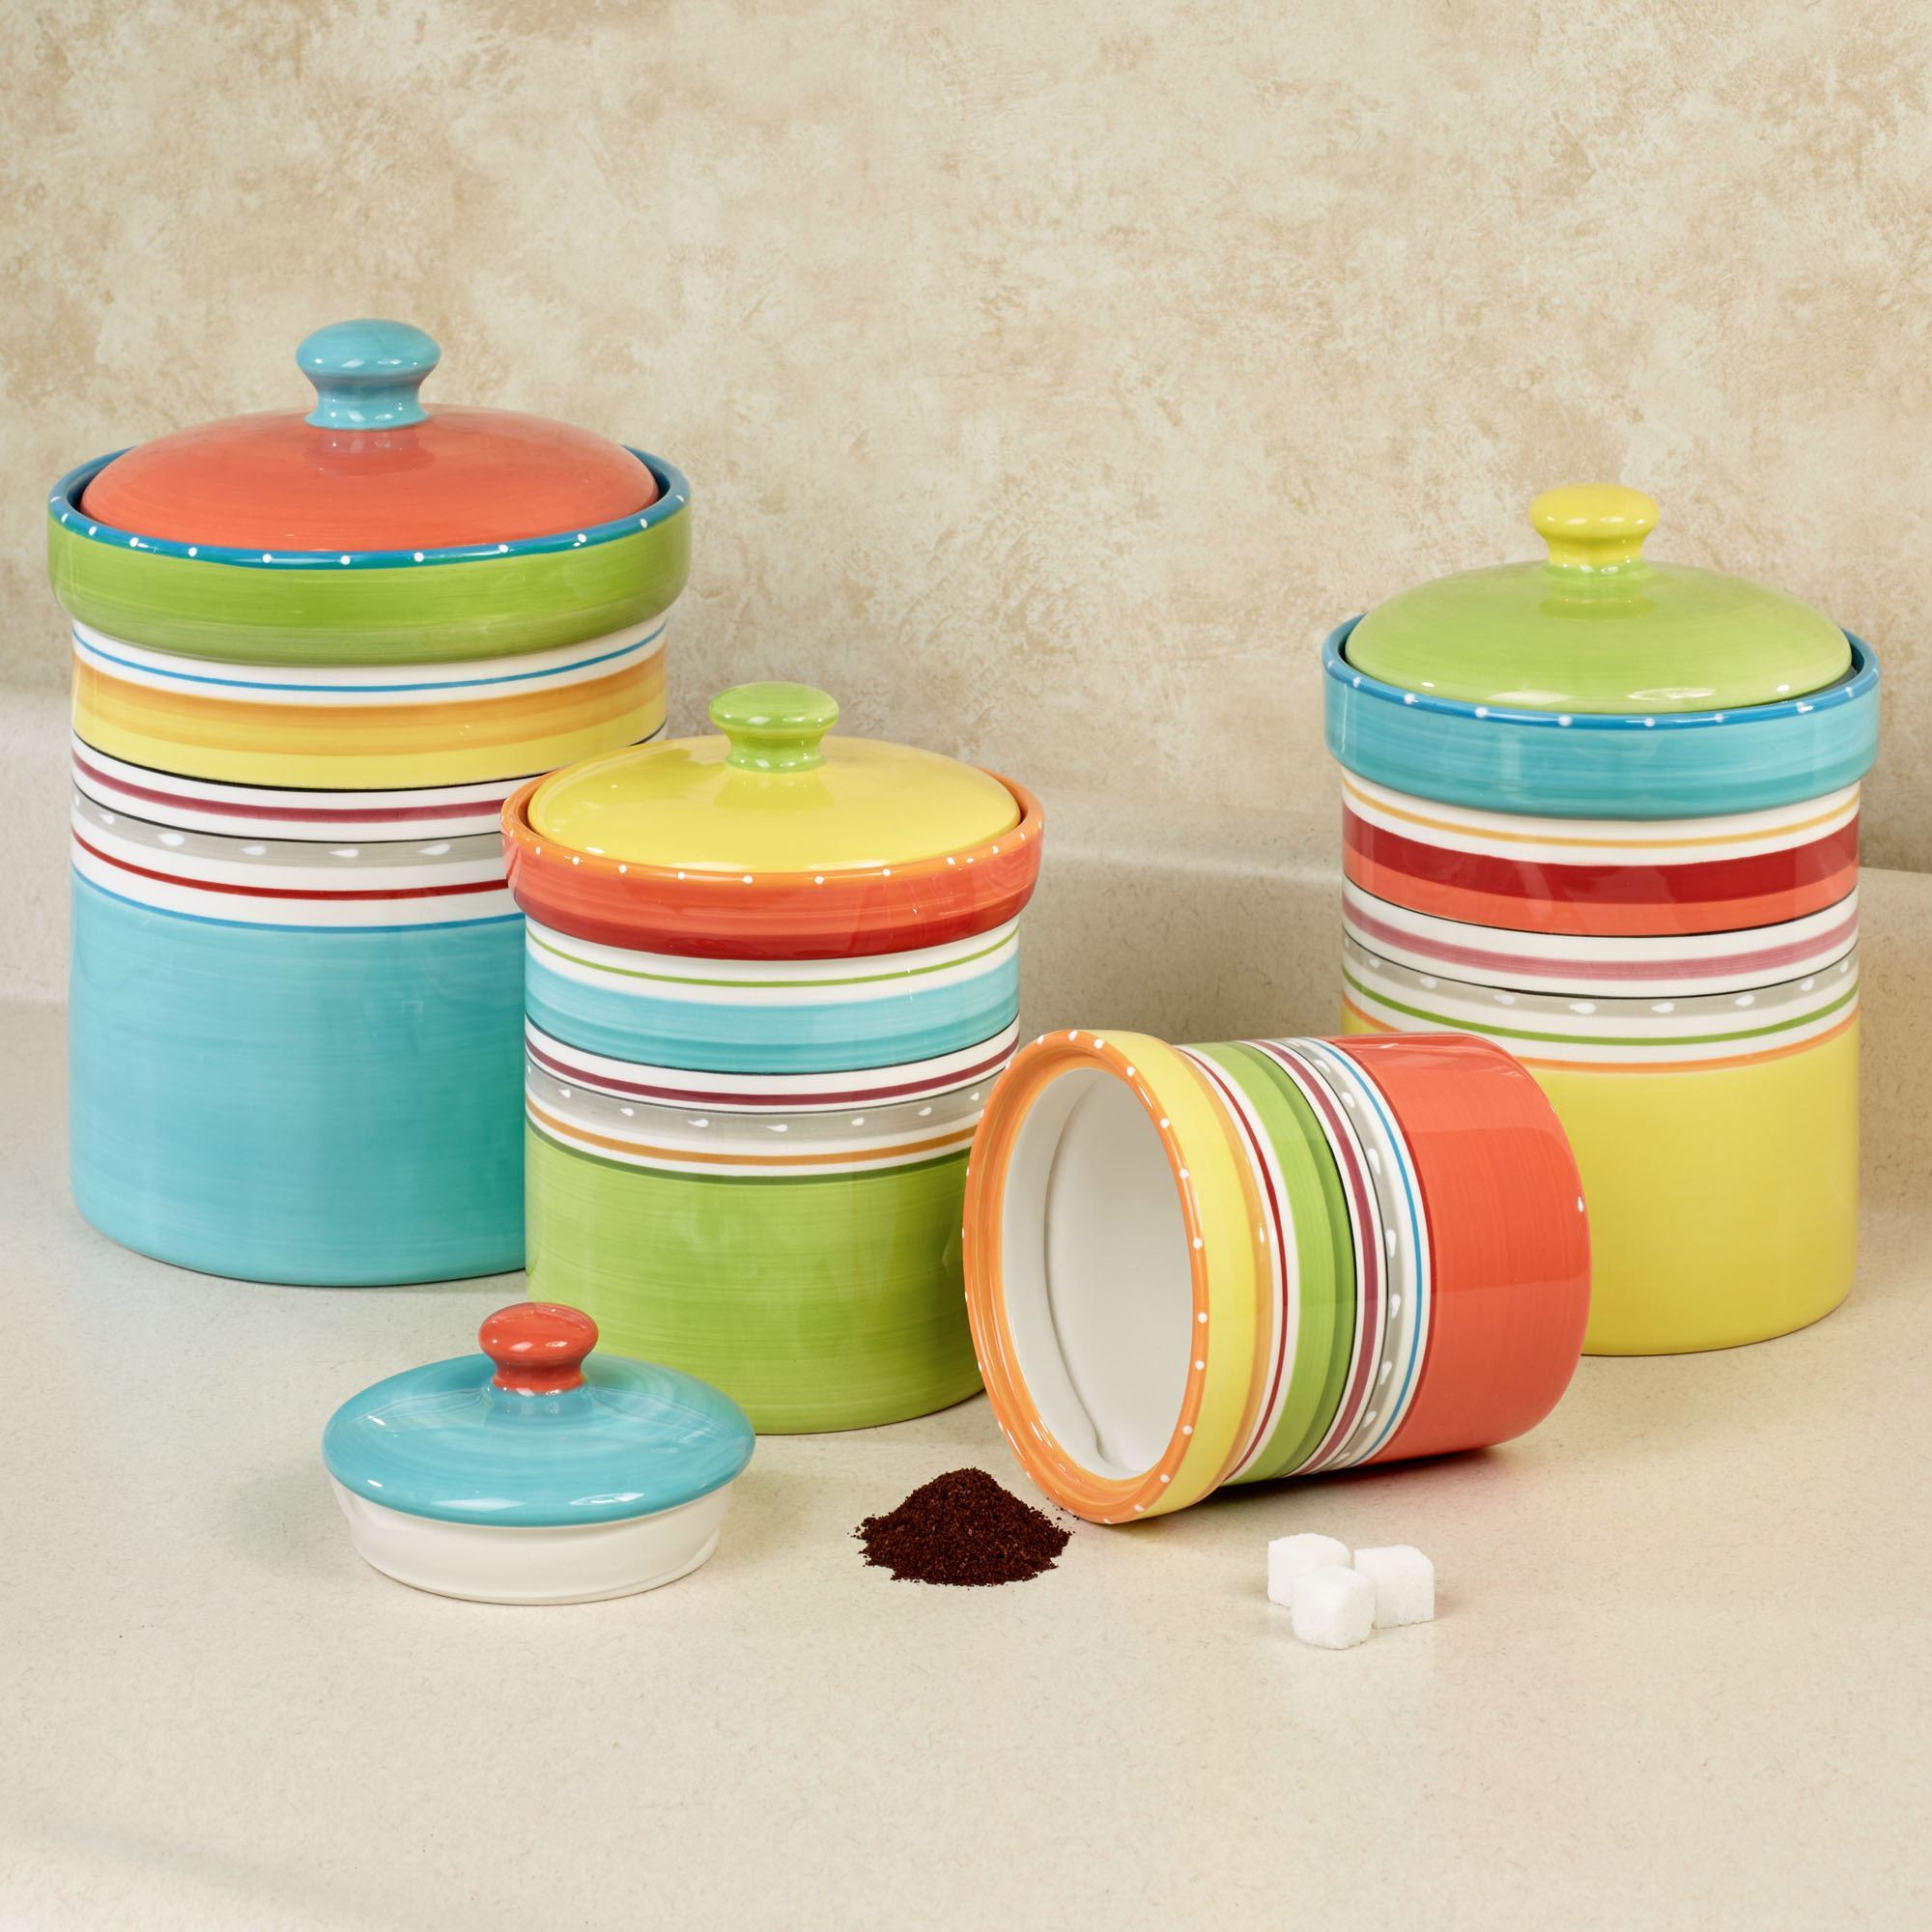 kitchen canister scrub brush holder mariachi striped colorful set touch to zoom